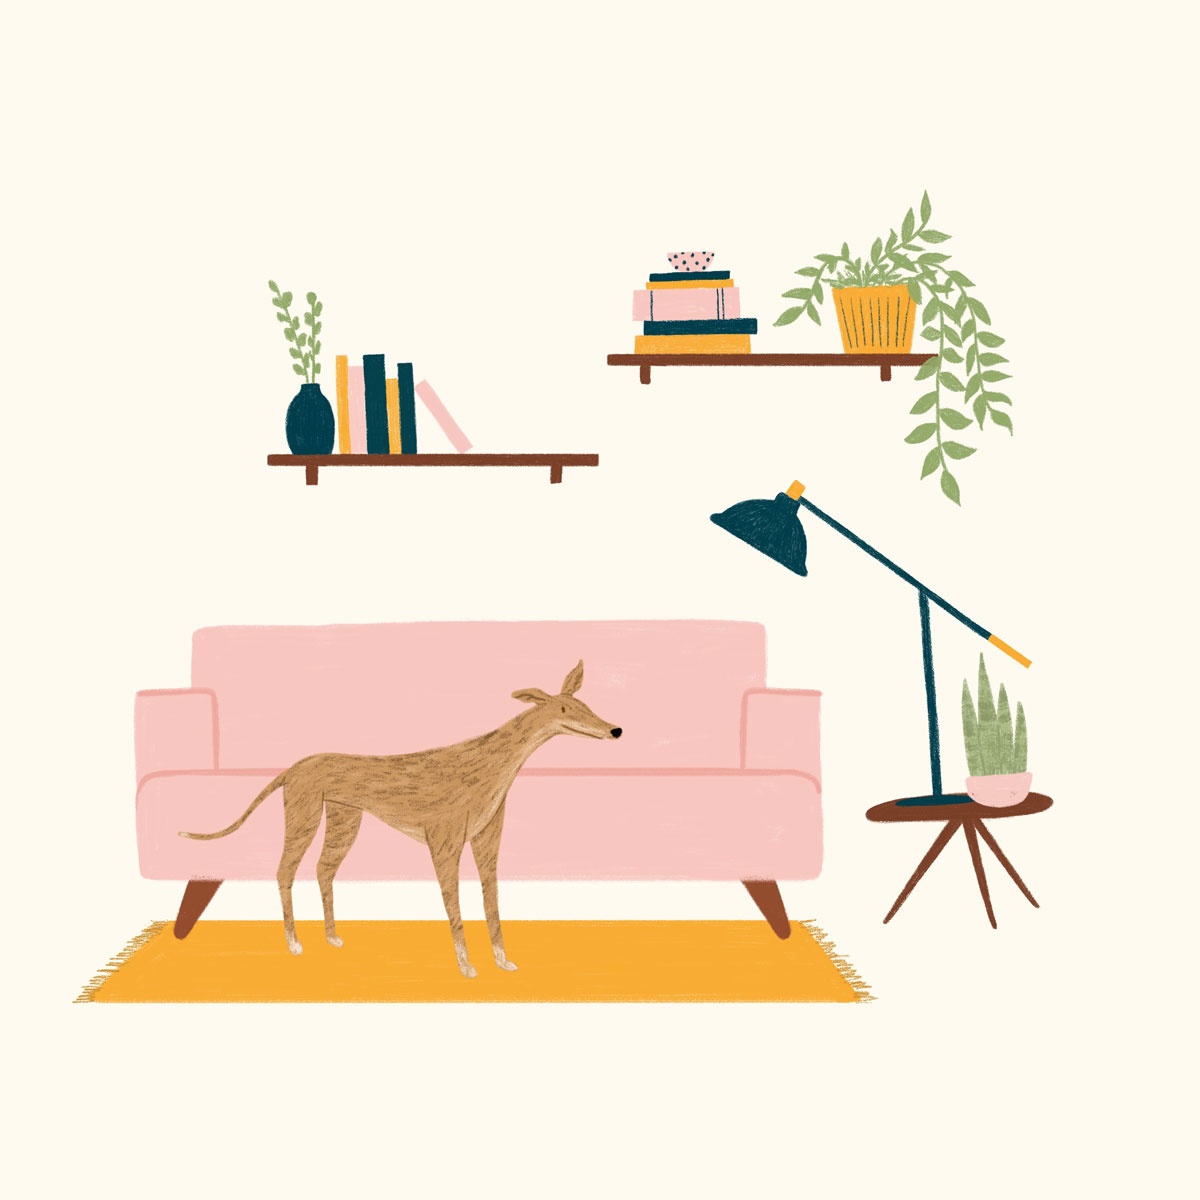 dog on couch illustration by Kaila Elders